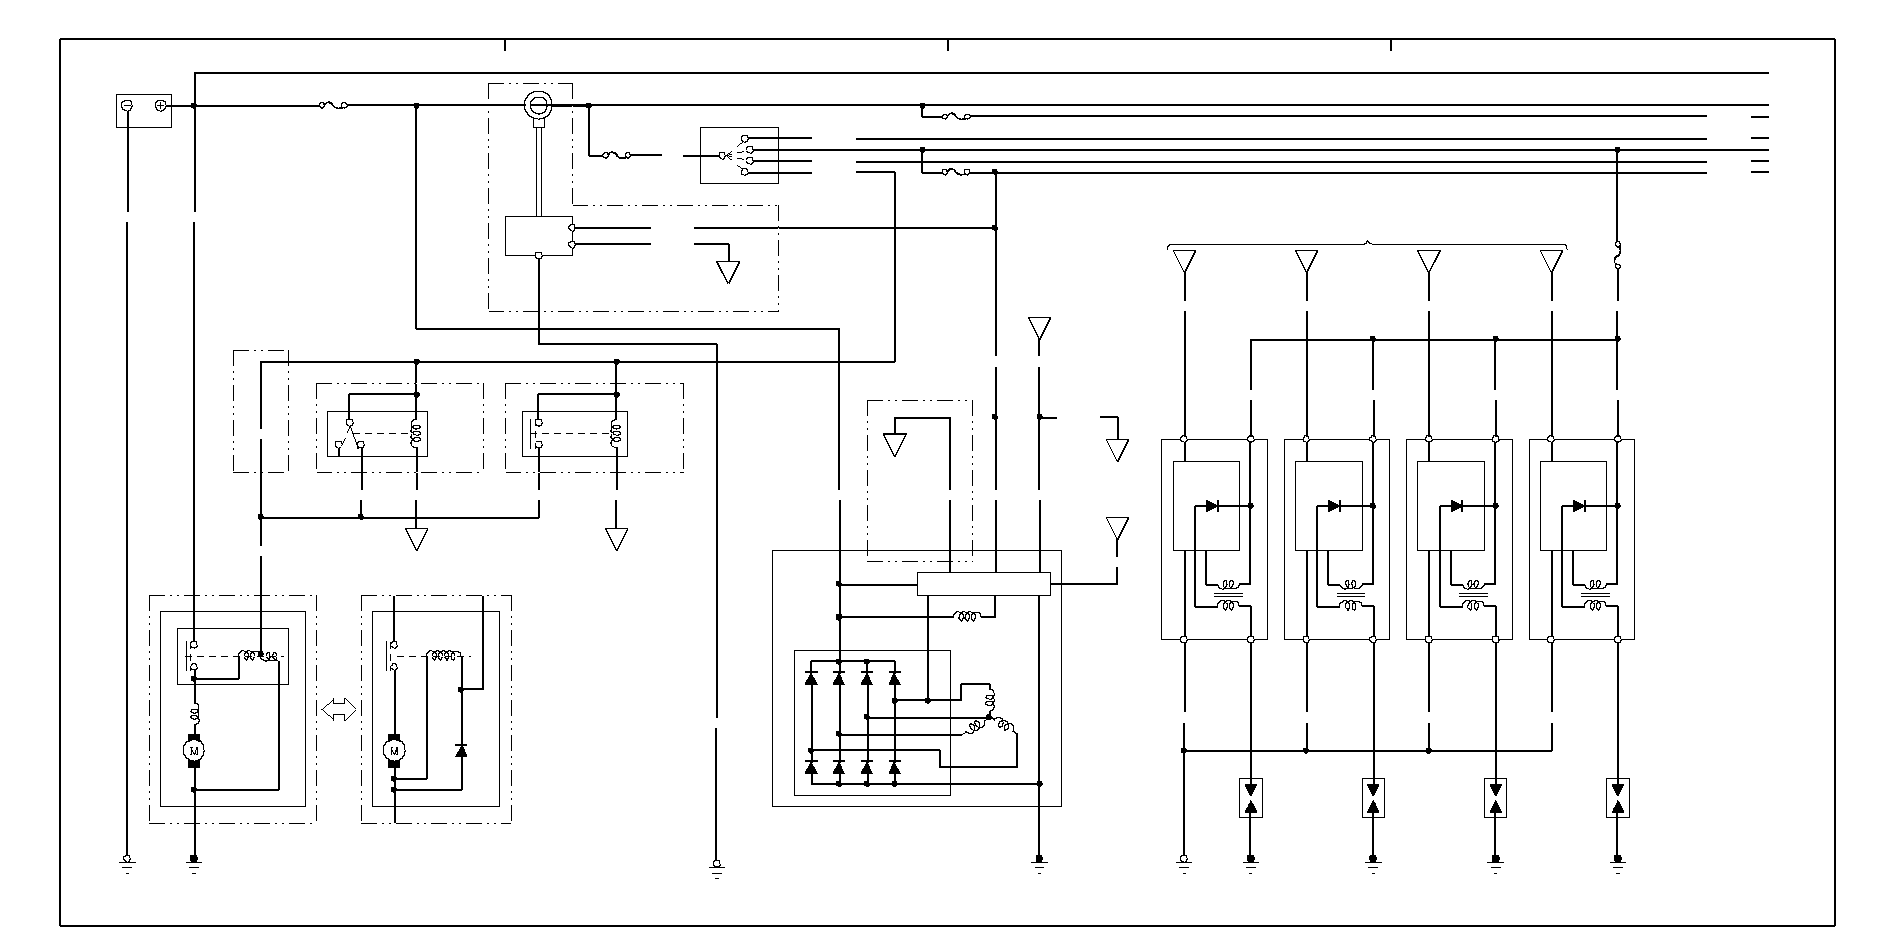 honda cr 125 2002 diagrams  honda  auto wiring diagram